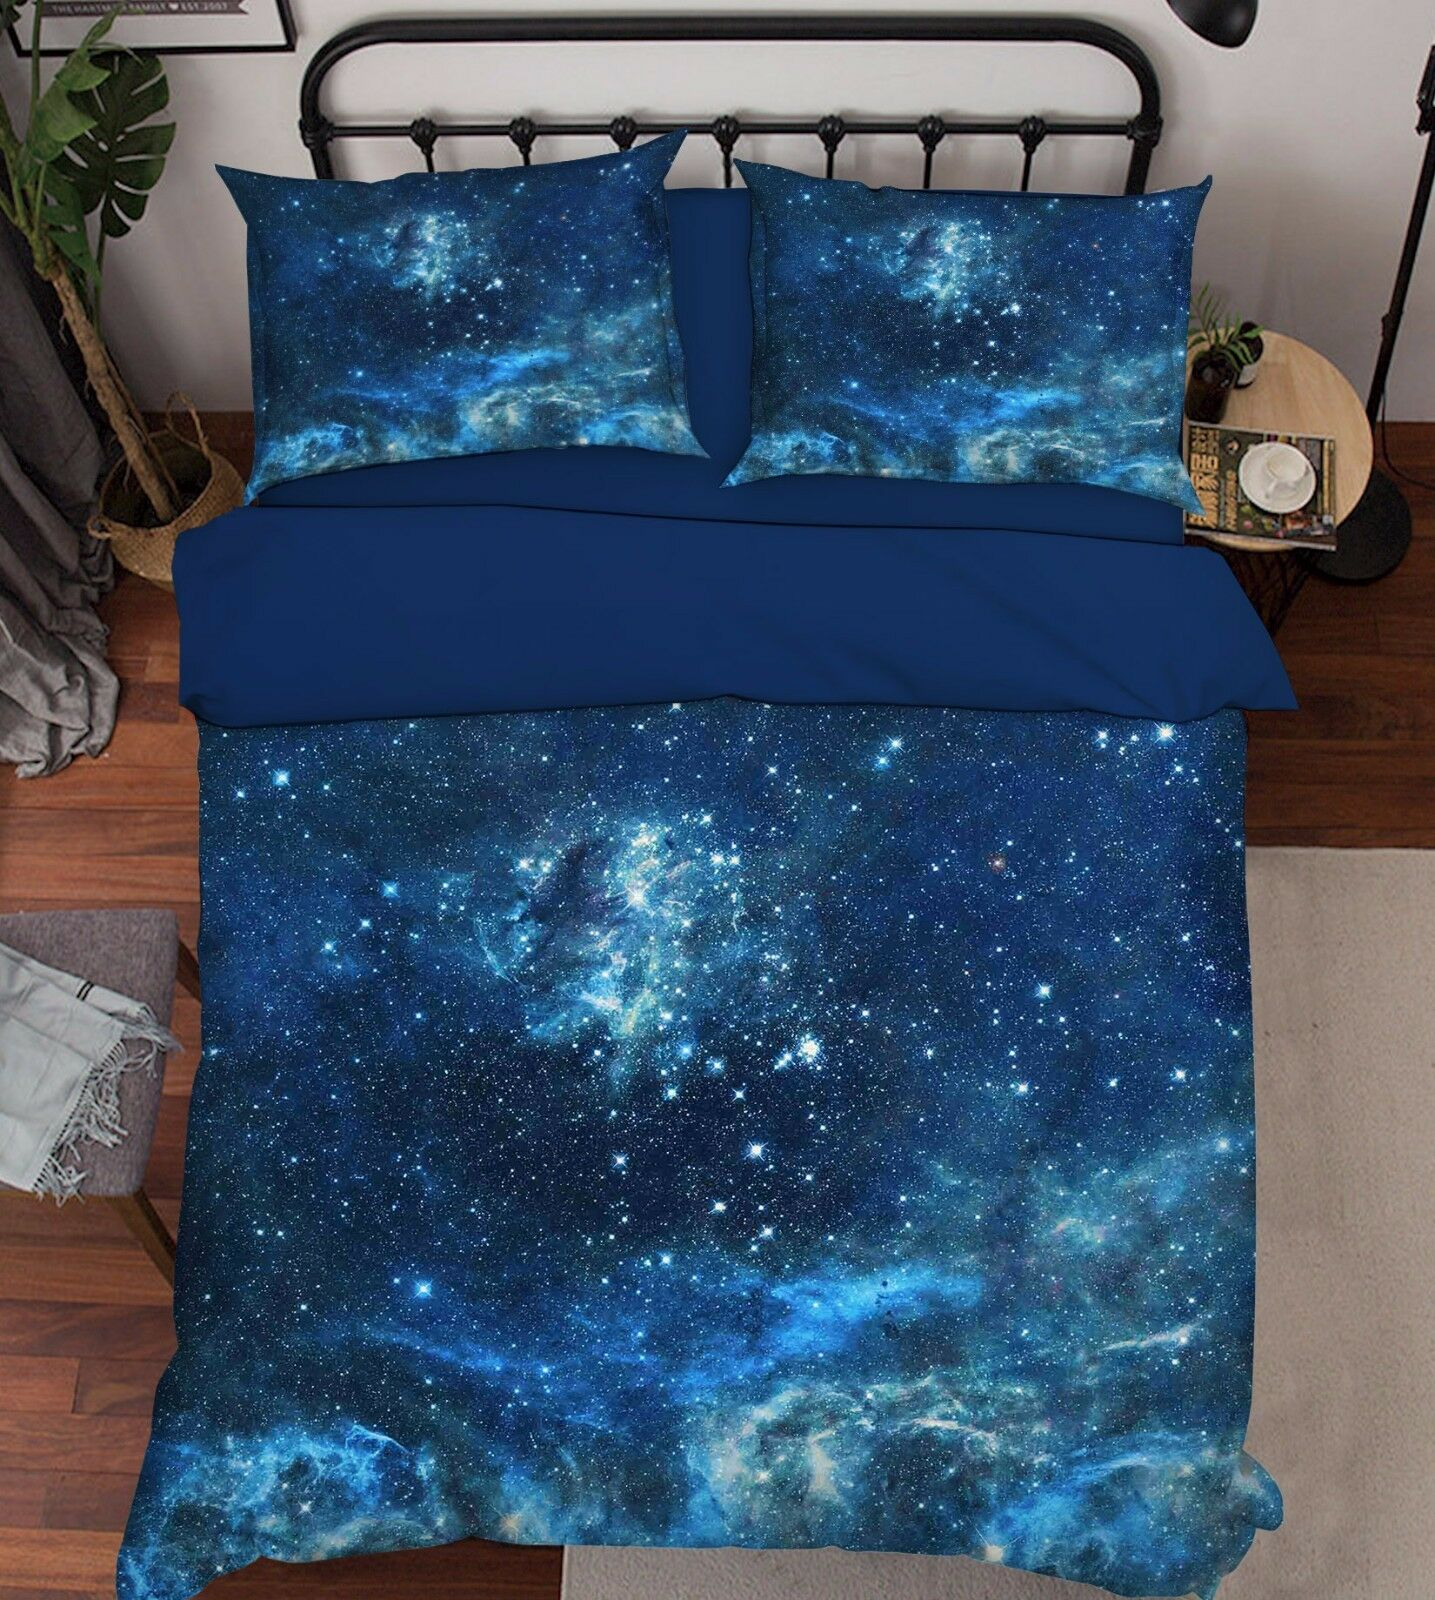 3D Sky Stars 290 Bett Pillowcases Quilt Duvet Startseite Set Single Königin König Größe AU